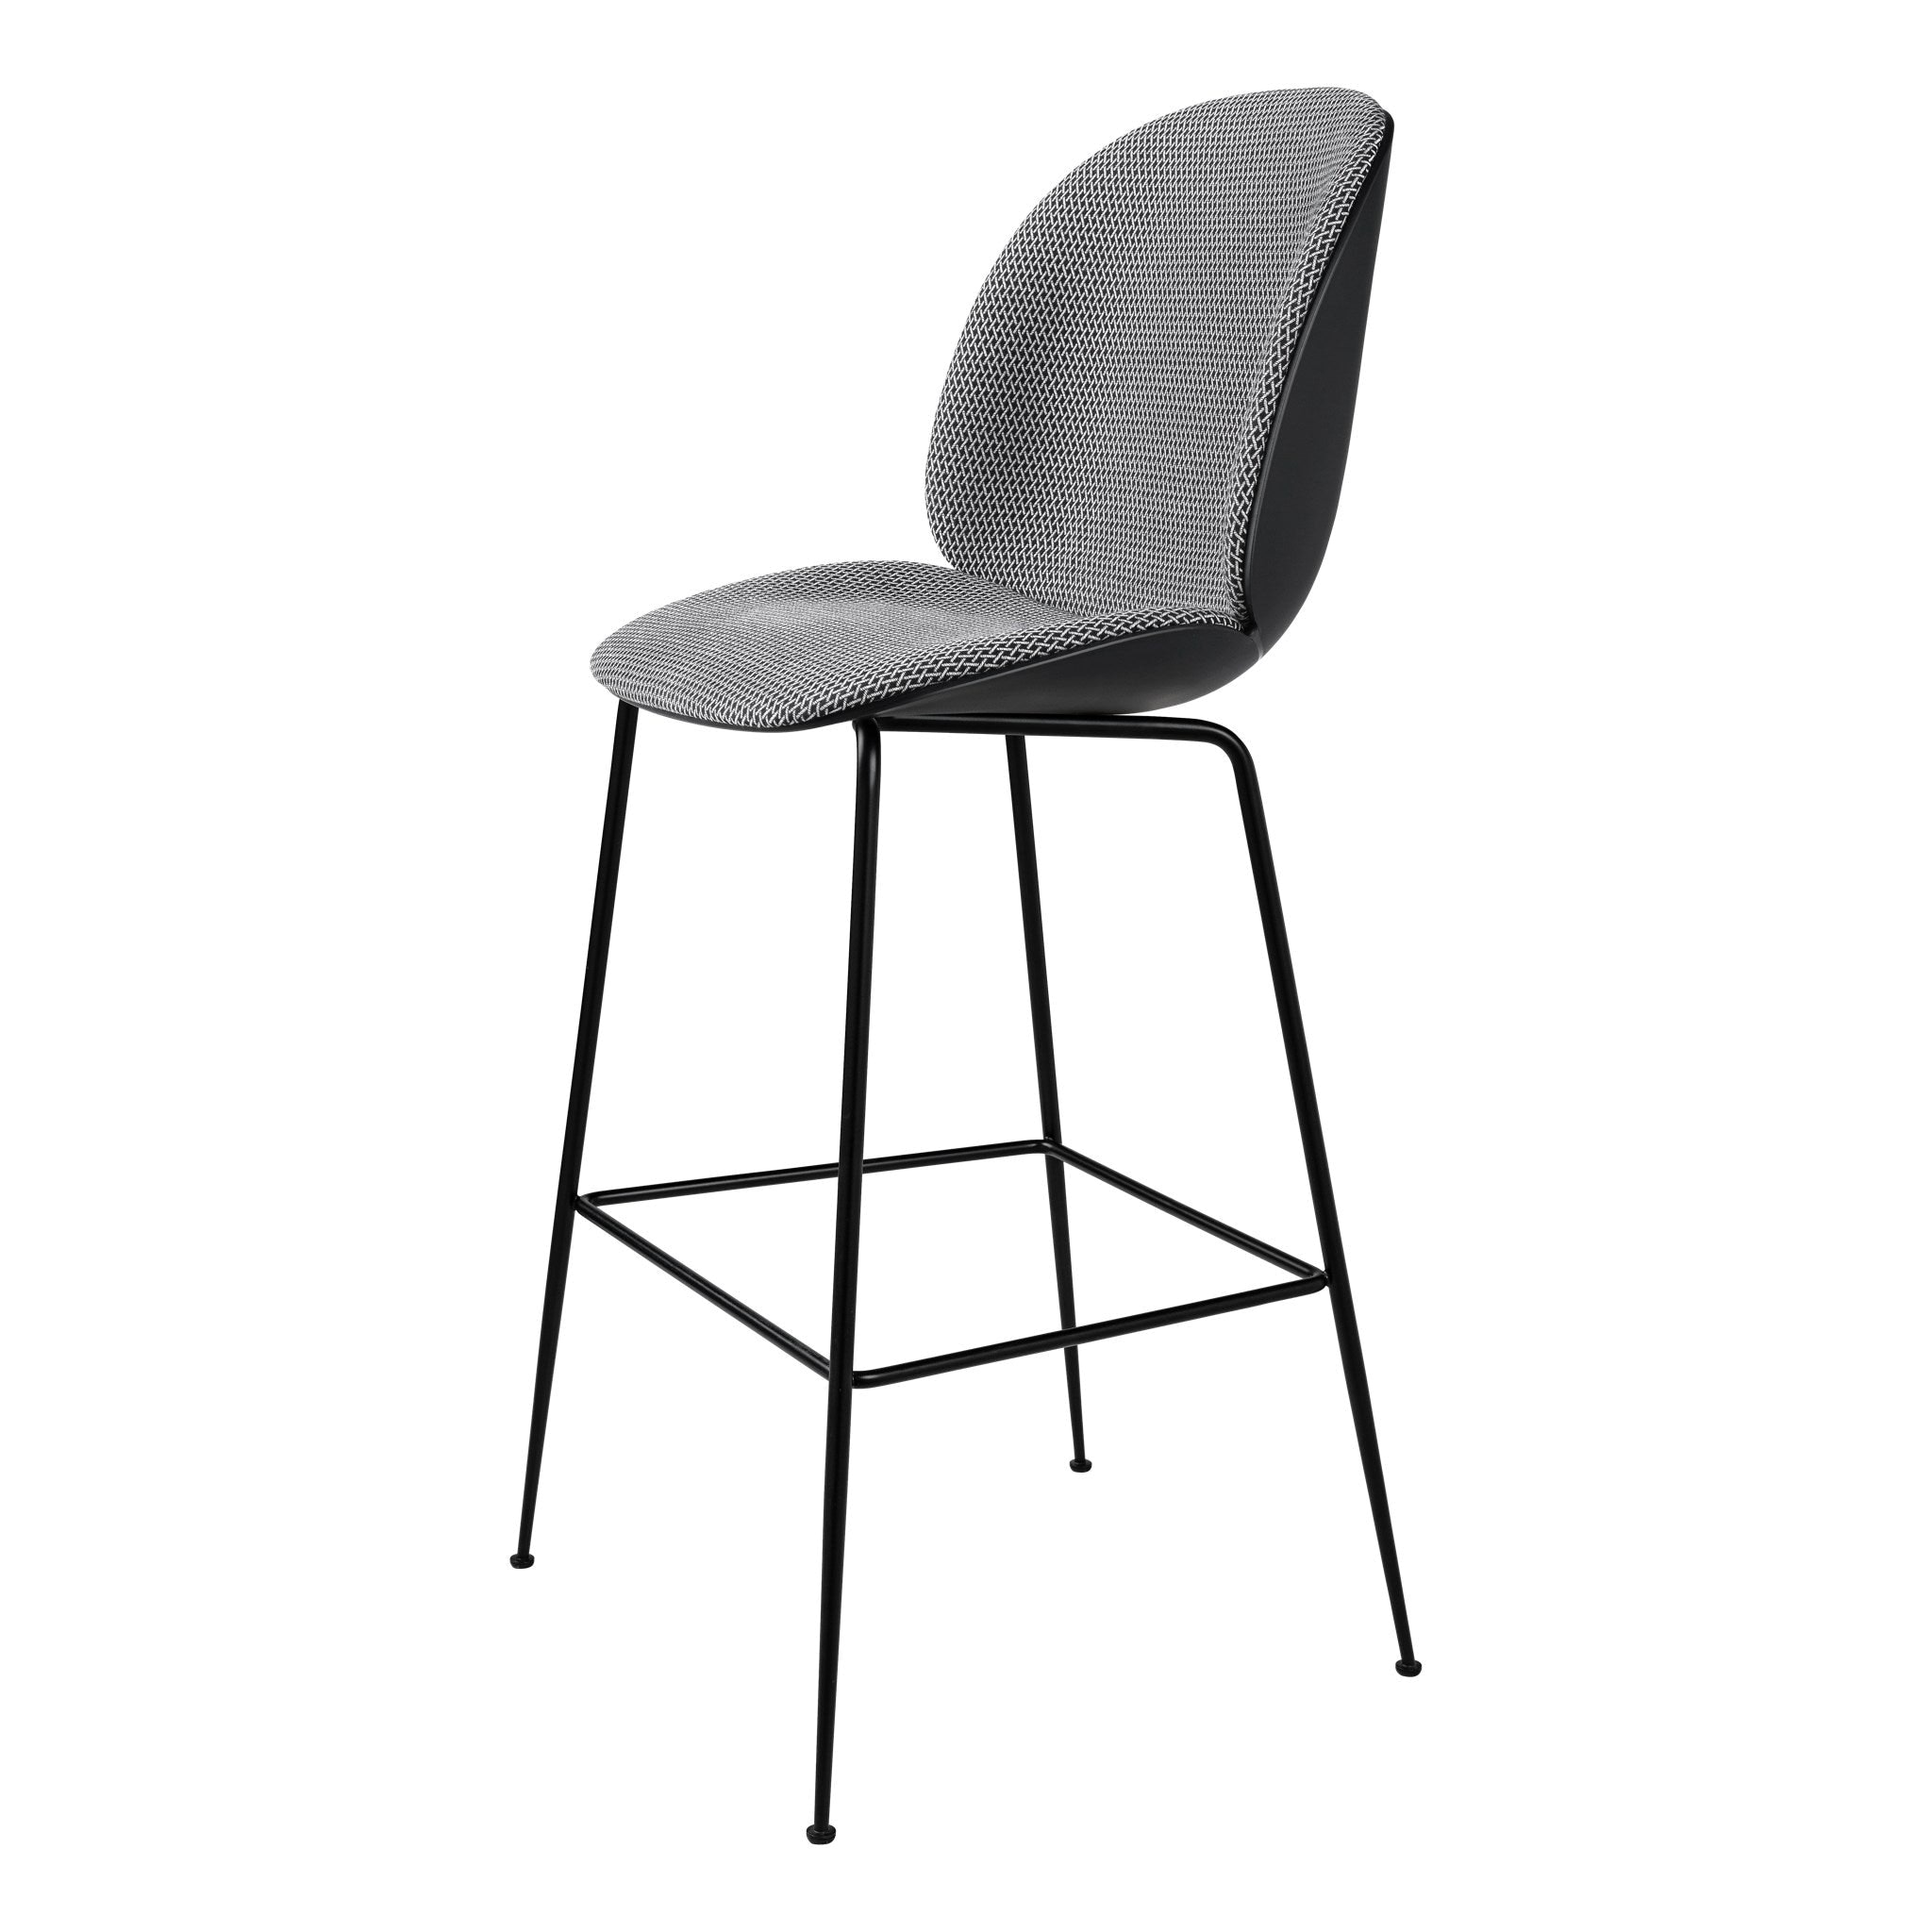 Beetle Counter Chair H65cm Front Upholstered by Gubi